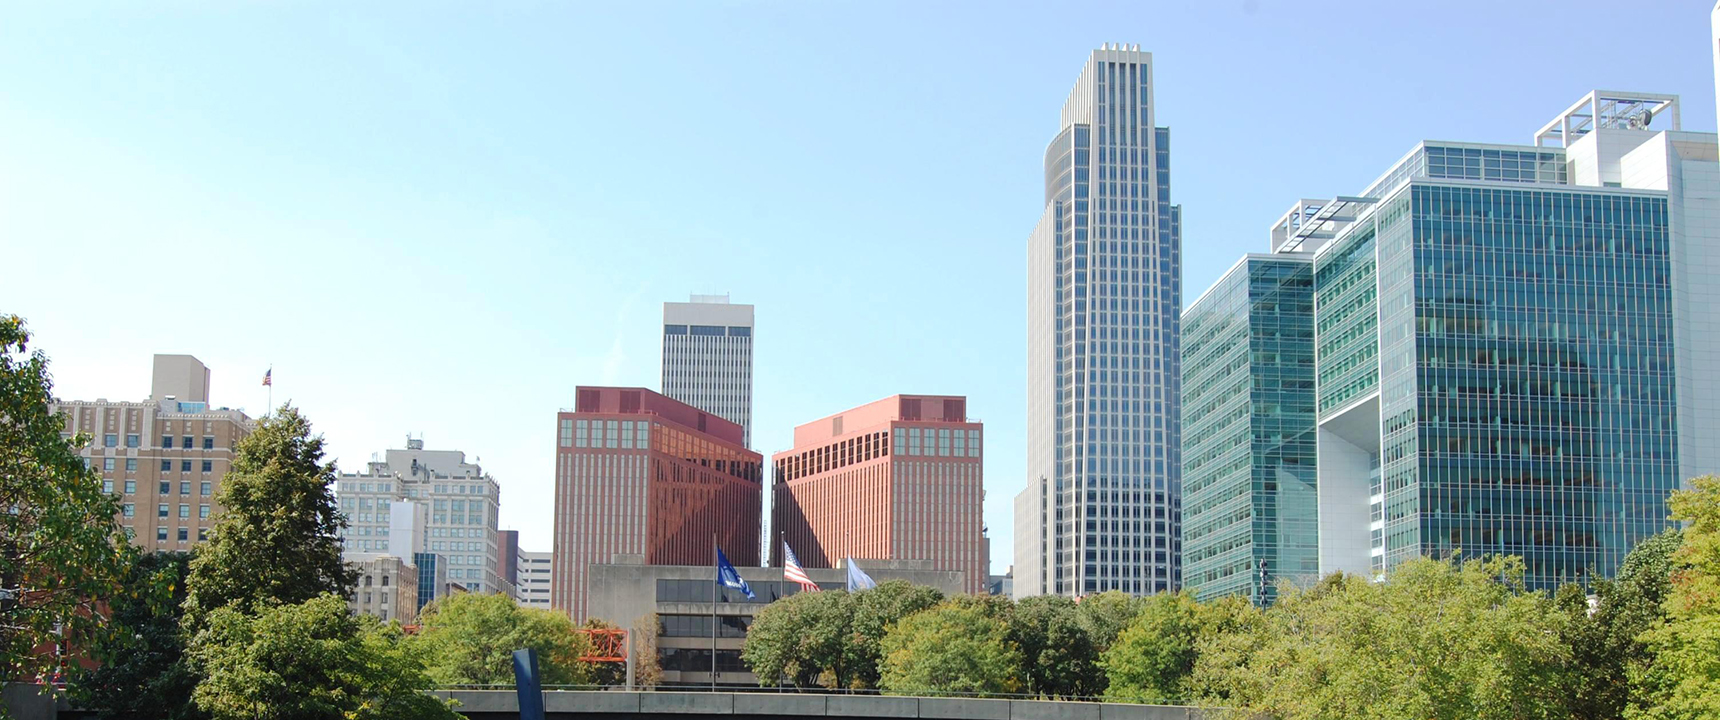 Photo of Omaha, Nebraska where the Great Plains Business Center is located.